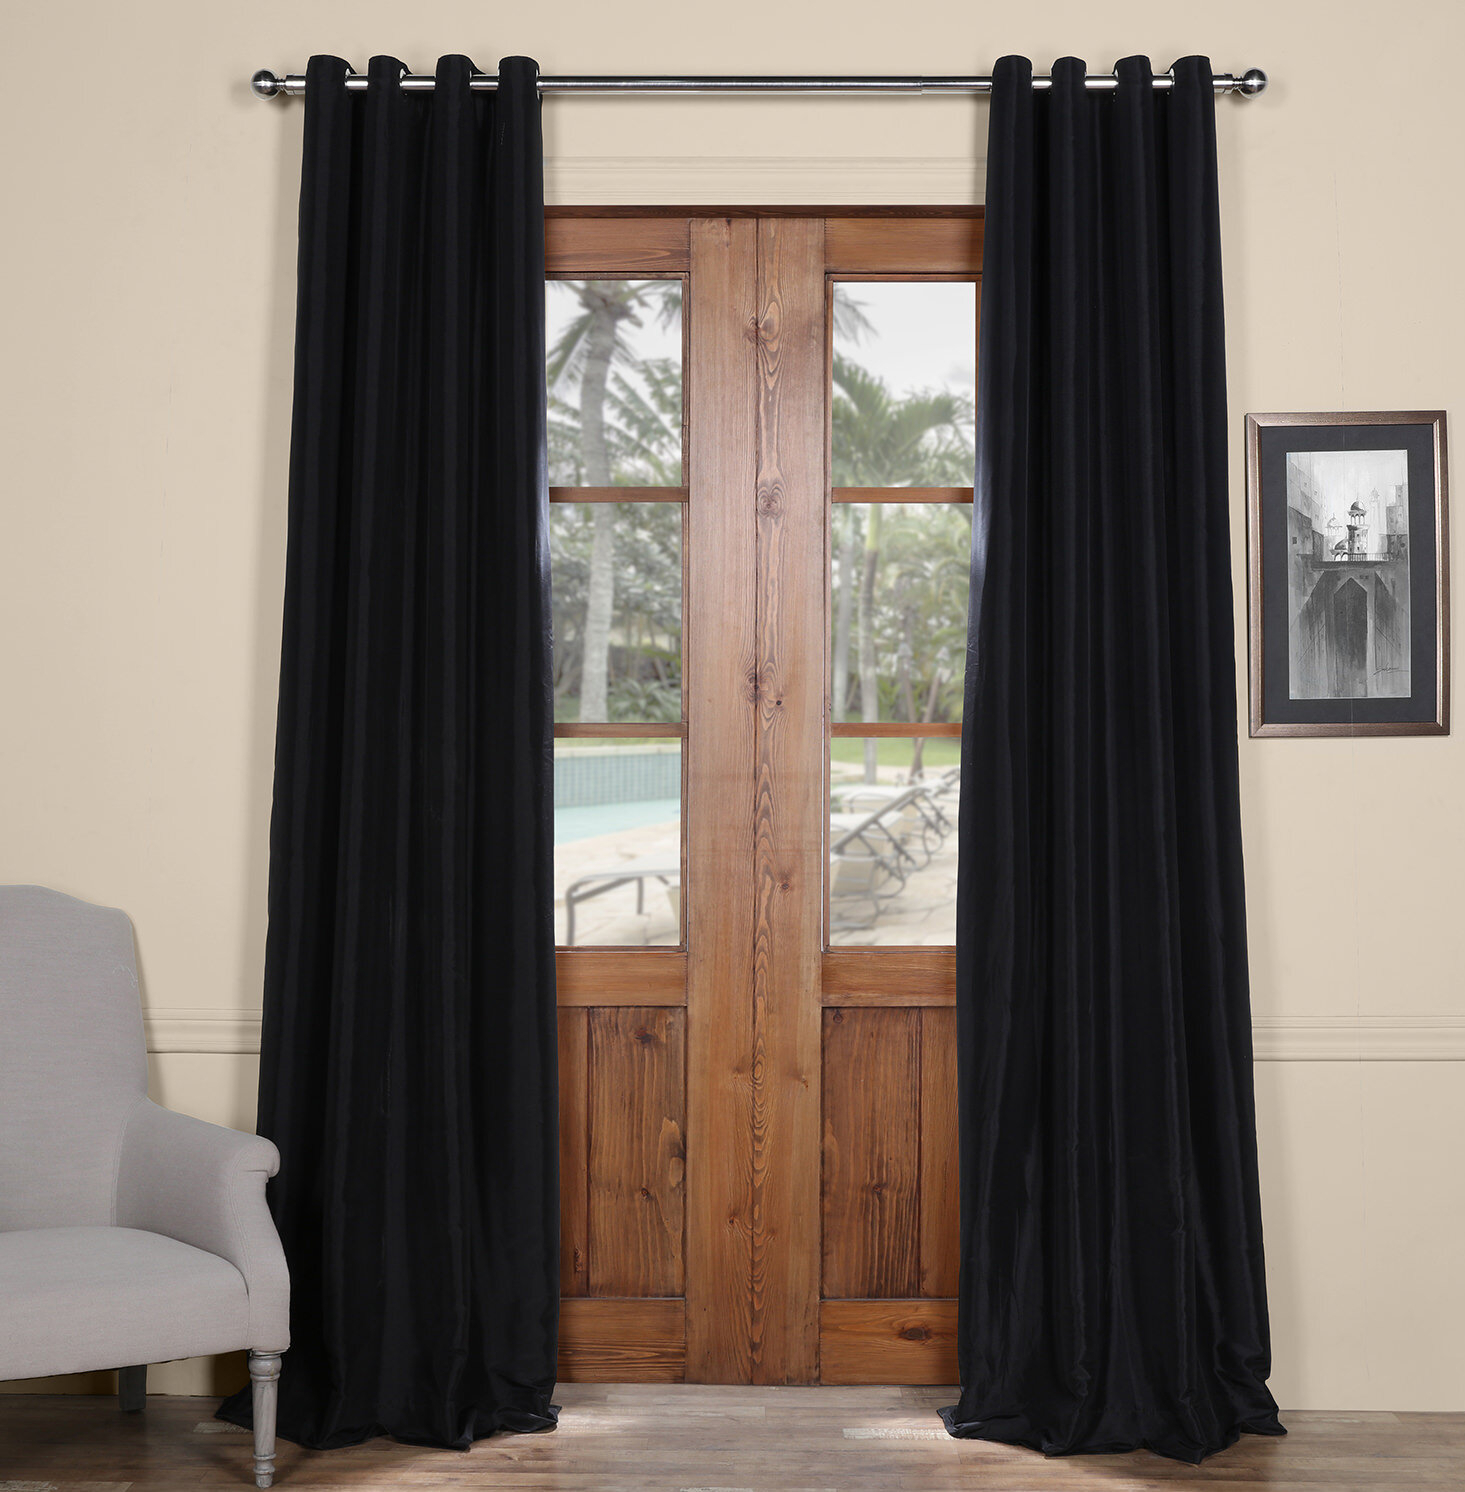 Clapham Solid Blackout Faux Silk Taffeta Thermal Rod Pocket Single Curtain Panel With Faux Silk Taffeta Solid Blackout Single Curtain Panels (View 9 of 20)